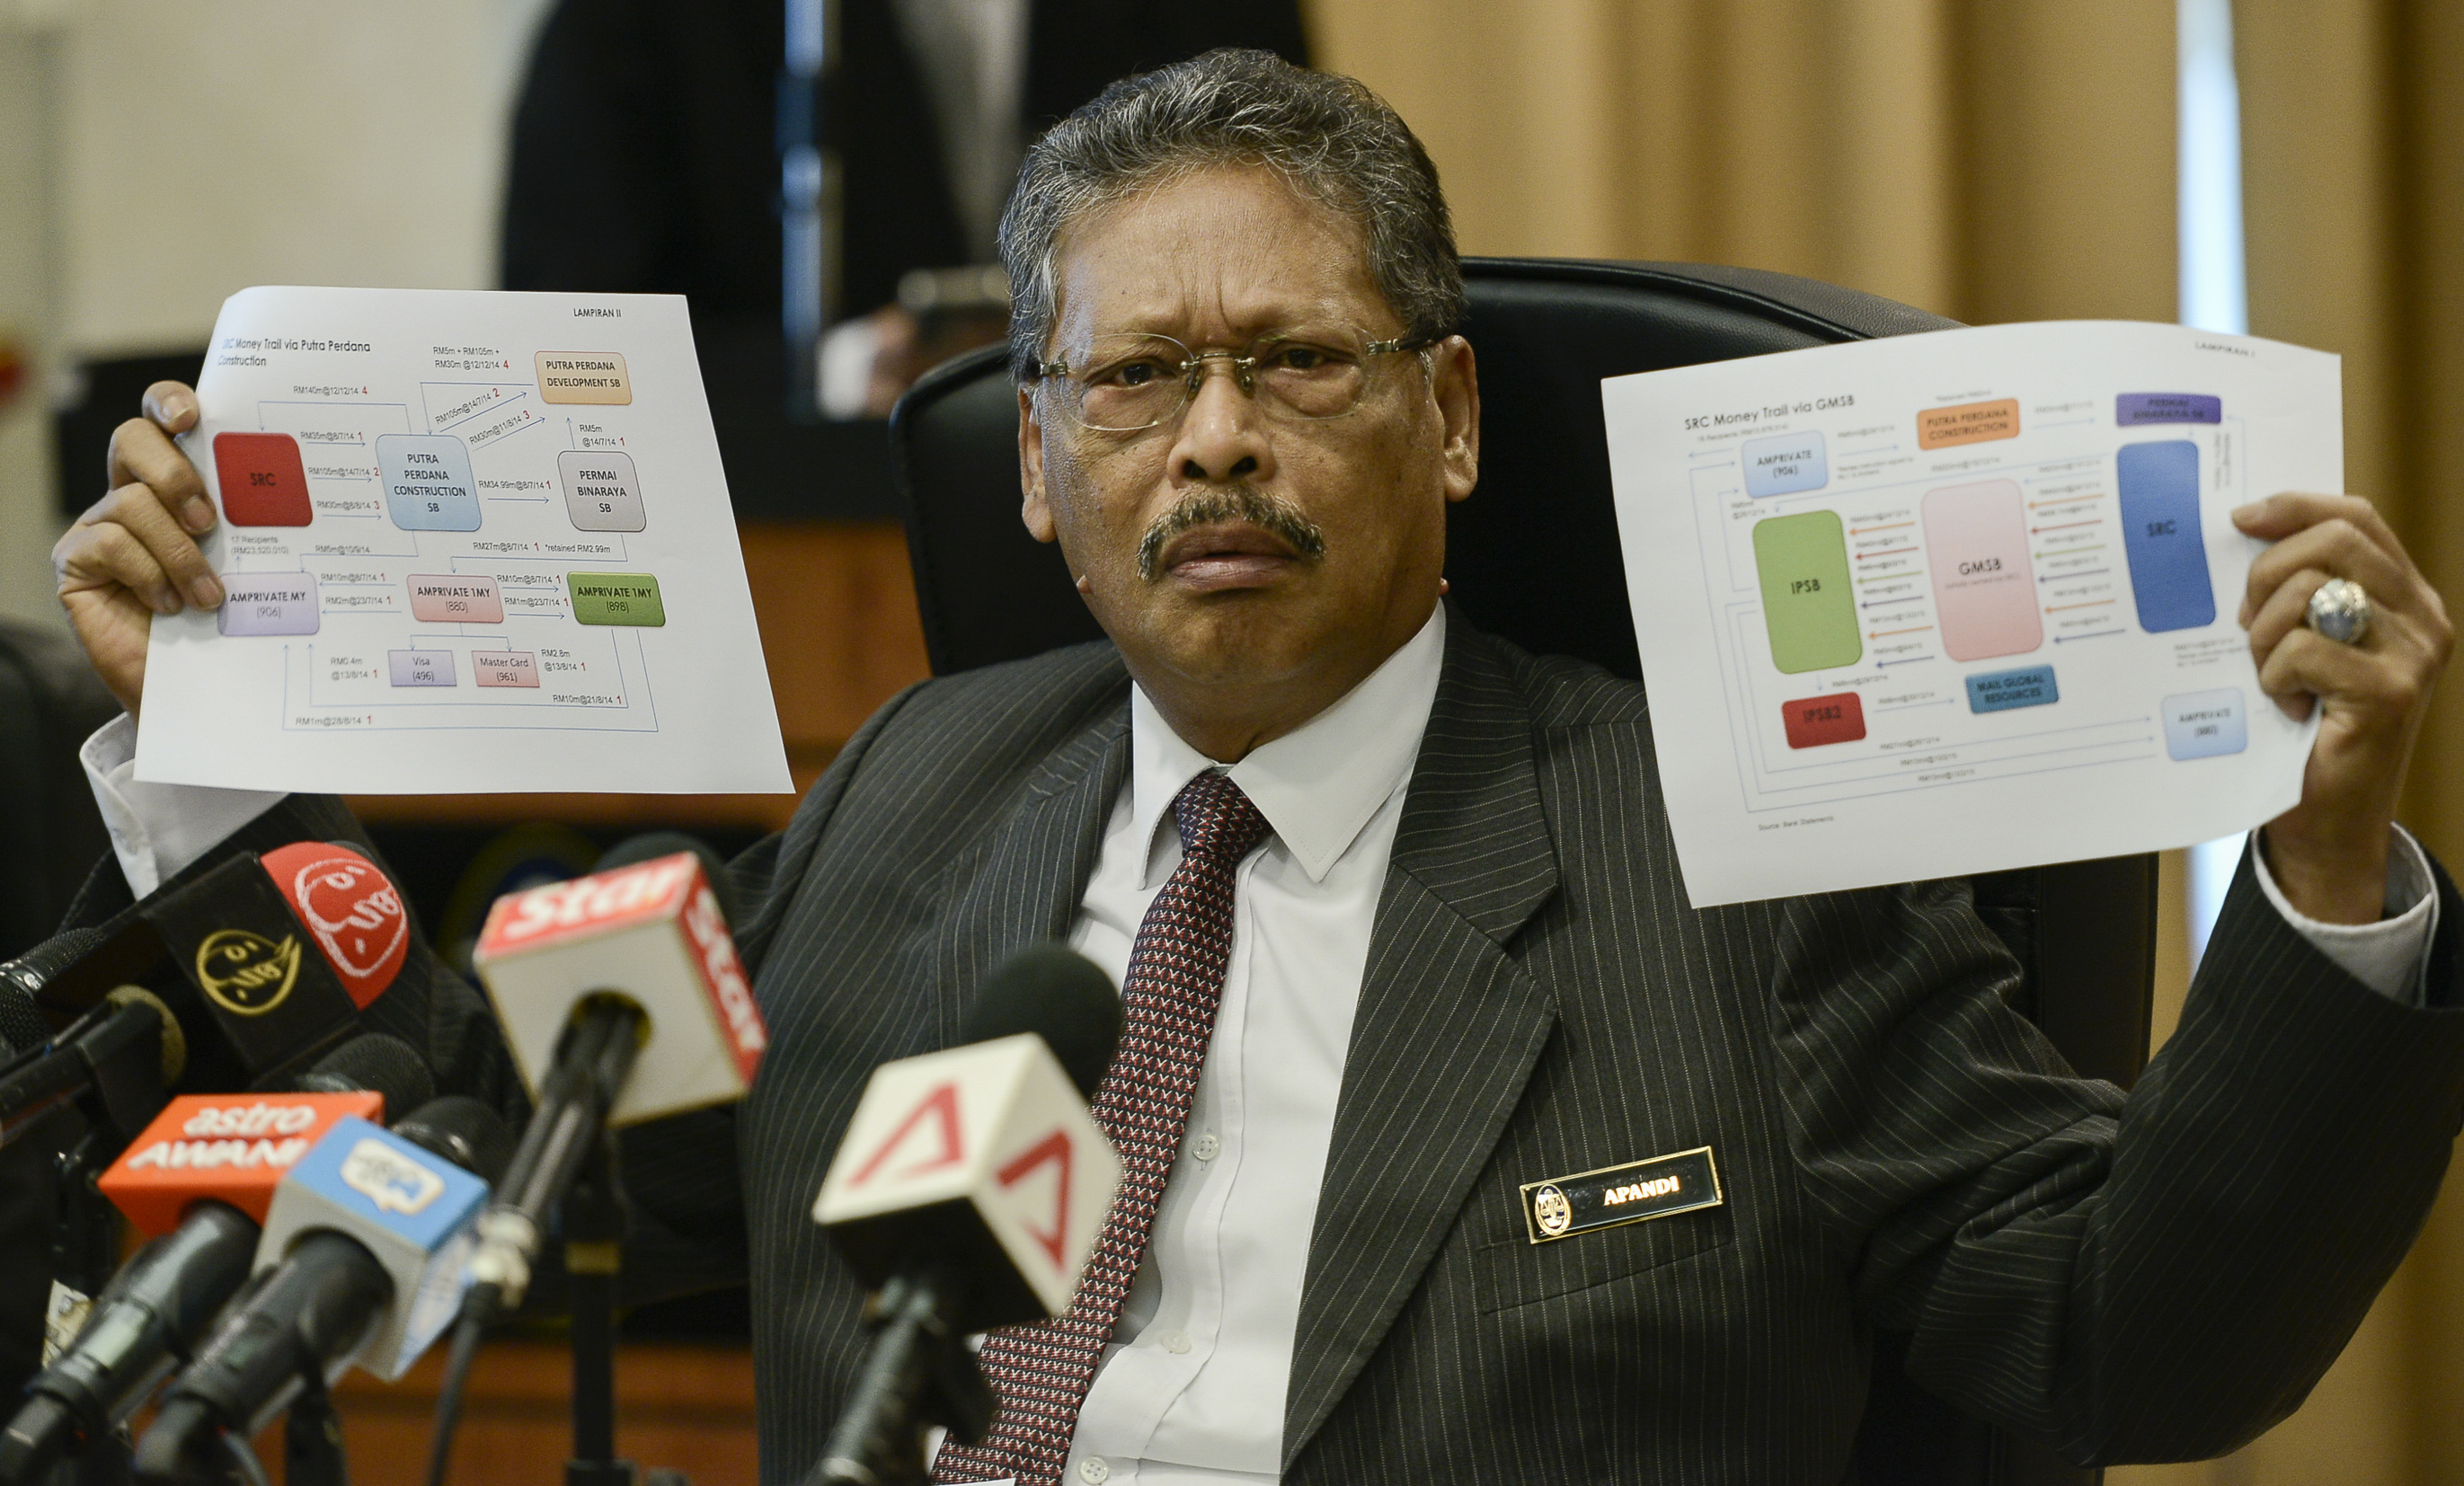 Malaysia's Attorney-General, Mohamed Apandi Ali shows money flow charts during a press conference in Putrajaya, Malaysia, 26 January 2016.